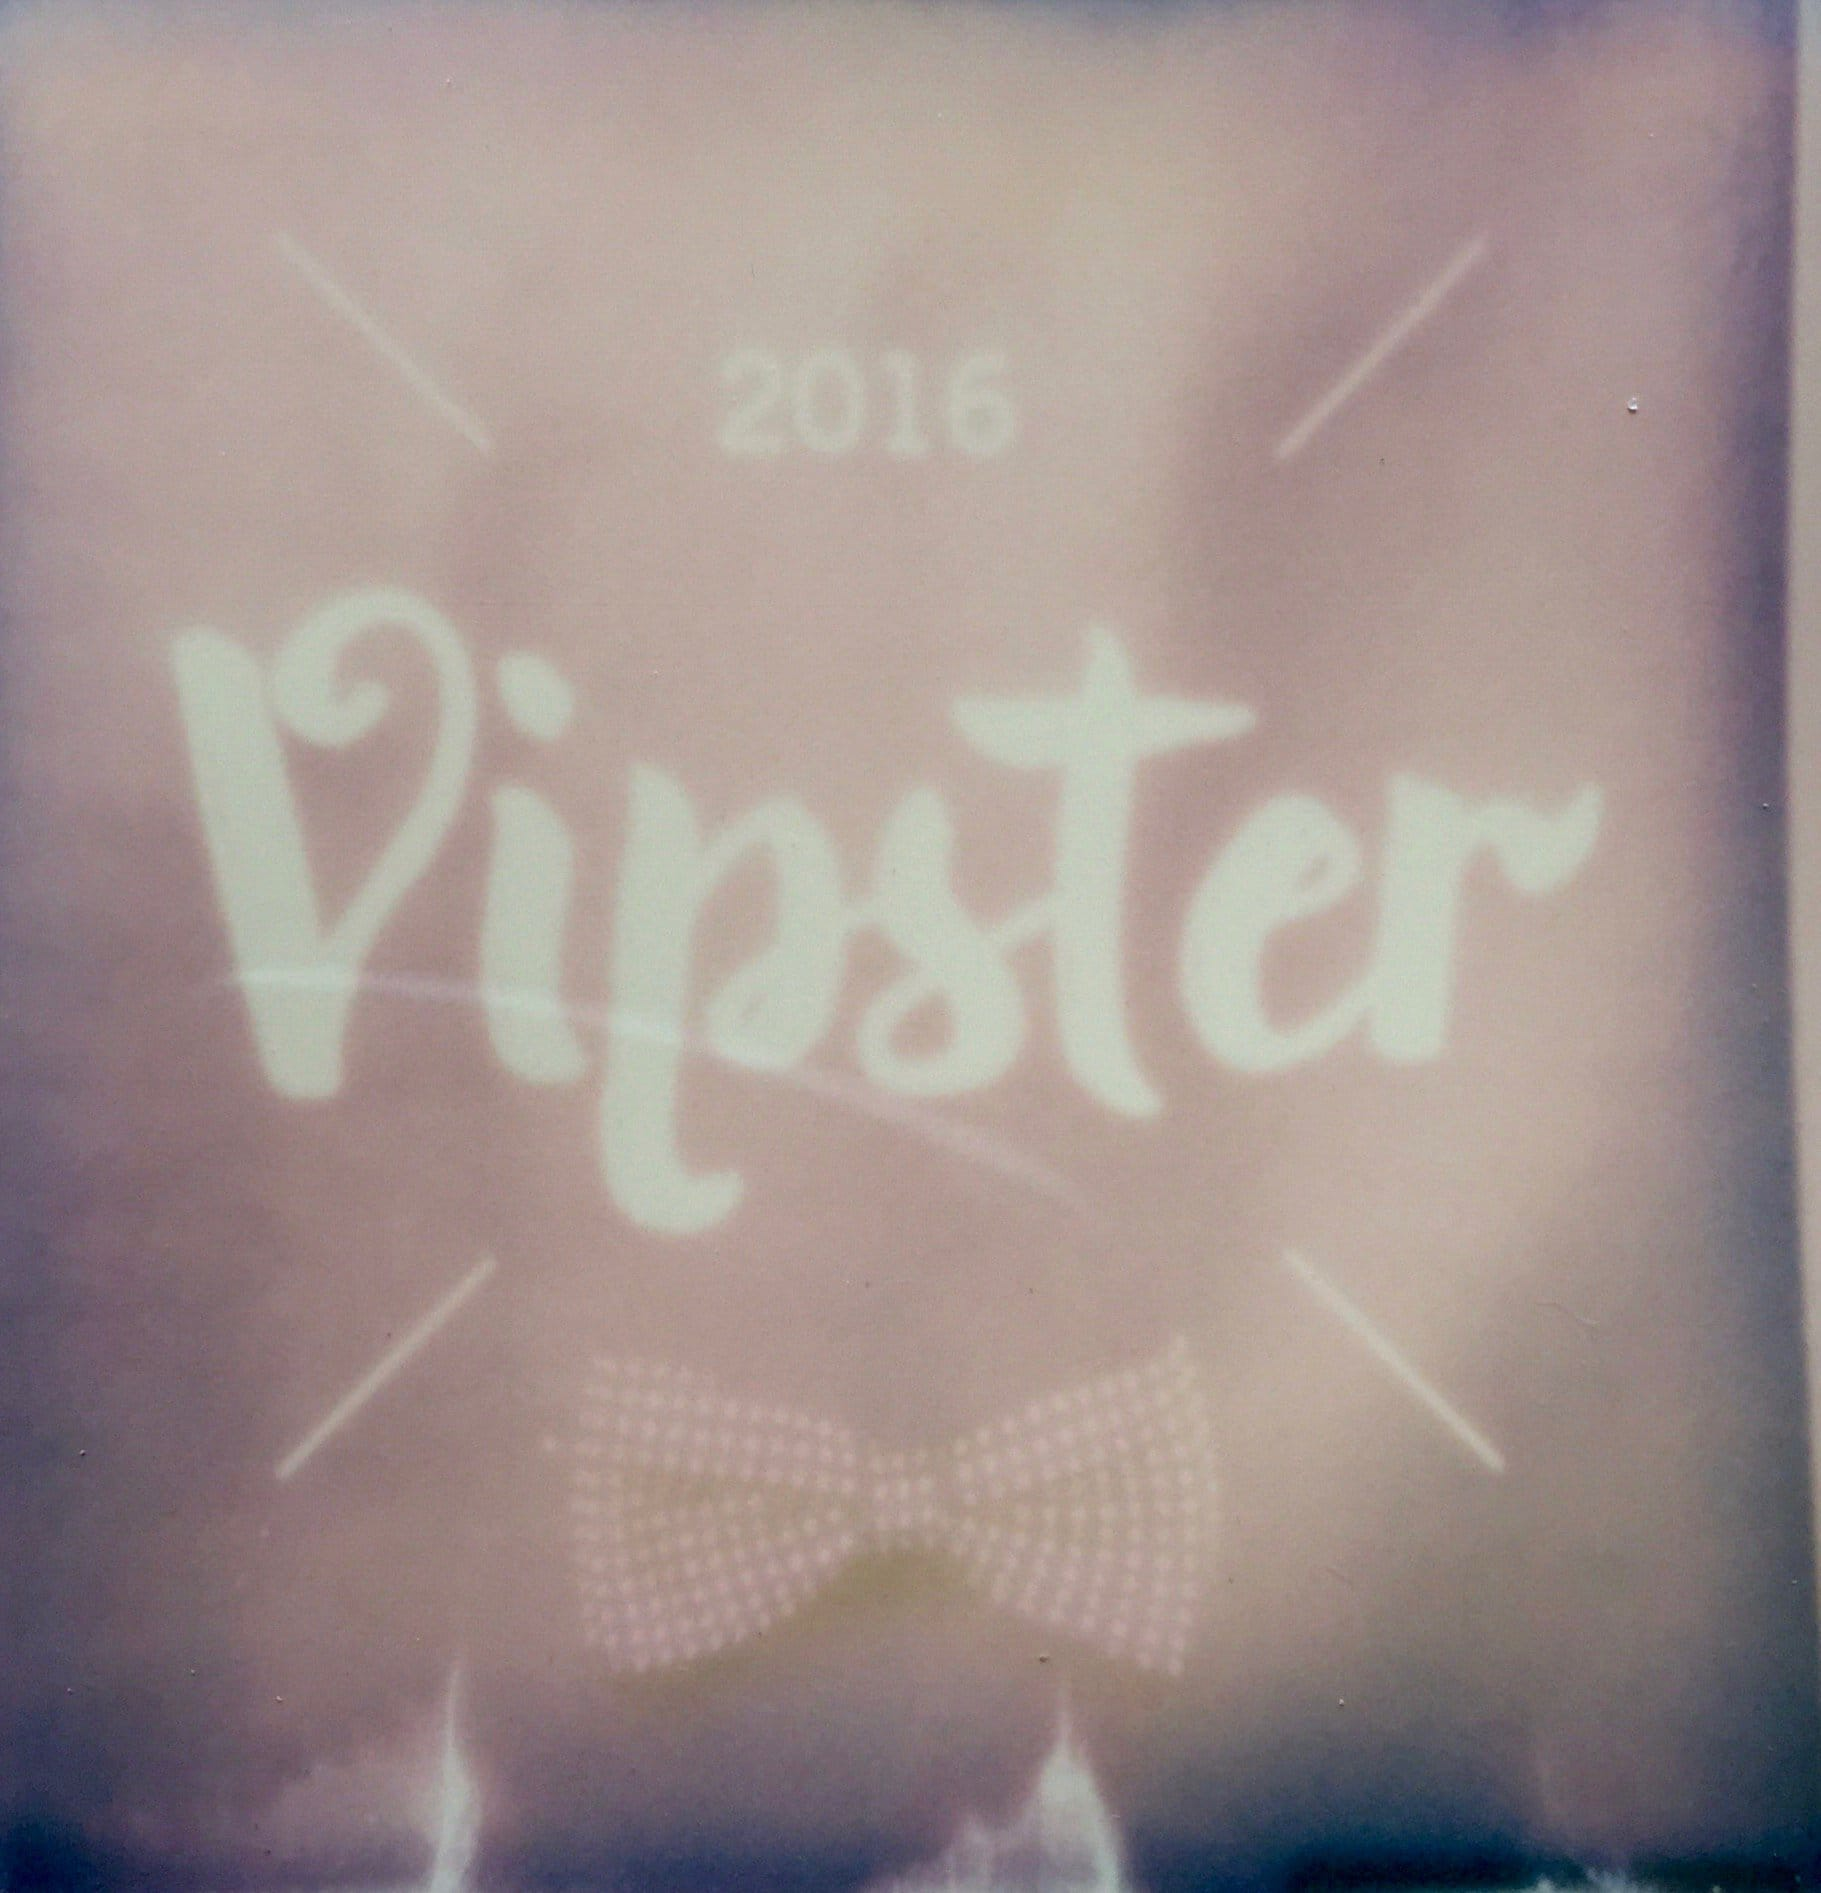 Vipster 00001